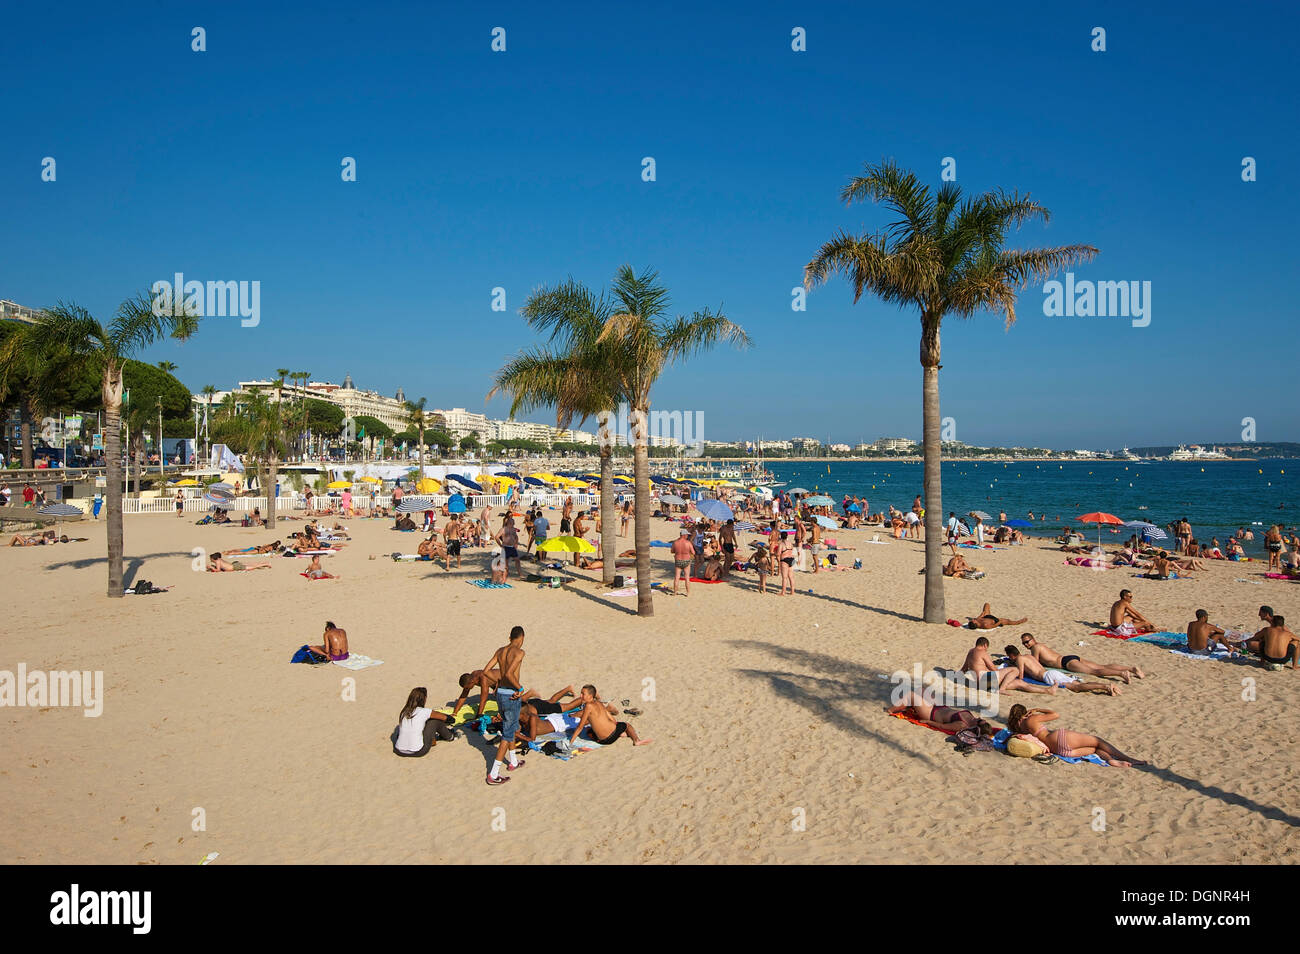 Beach on the Croisette, Cannes, French Riviera, Alpes-Maritimes, Provence-Alpes-Côte d'Azur, France - Stock Image